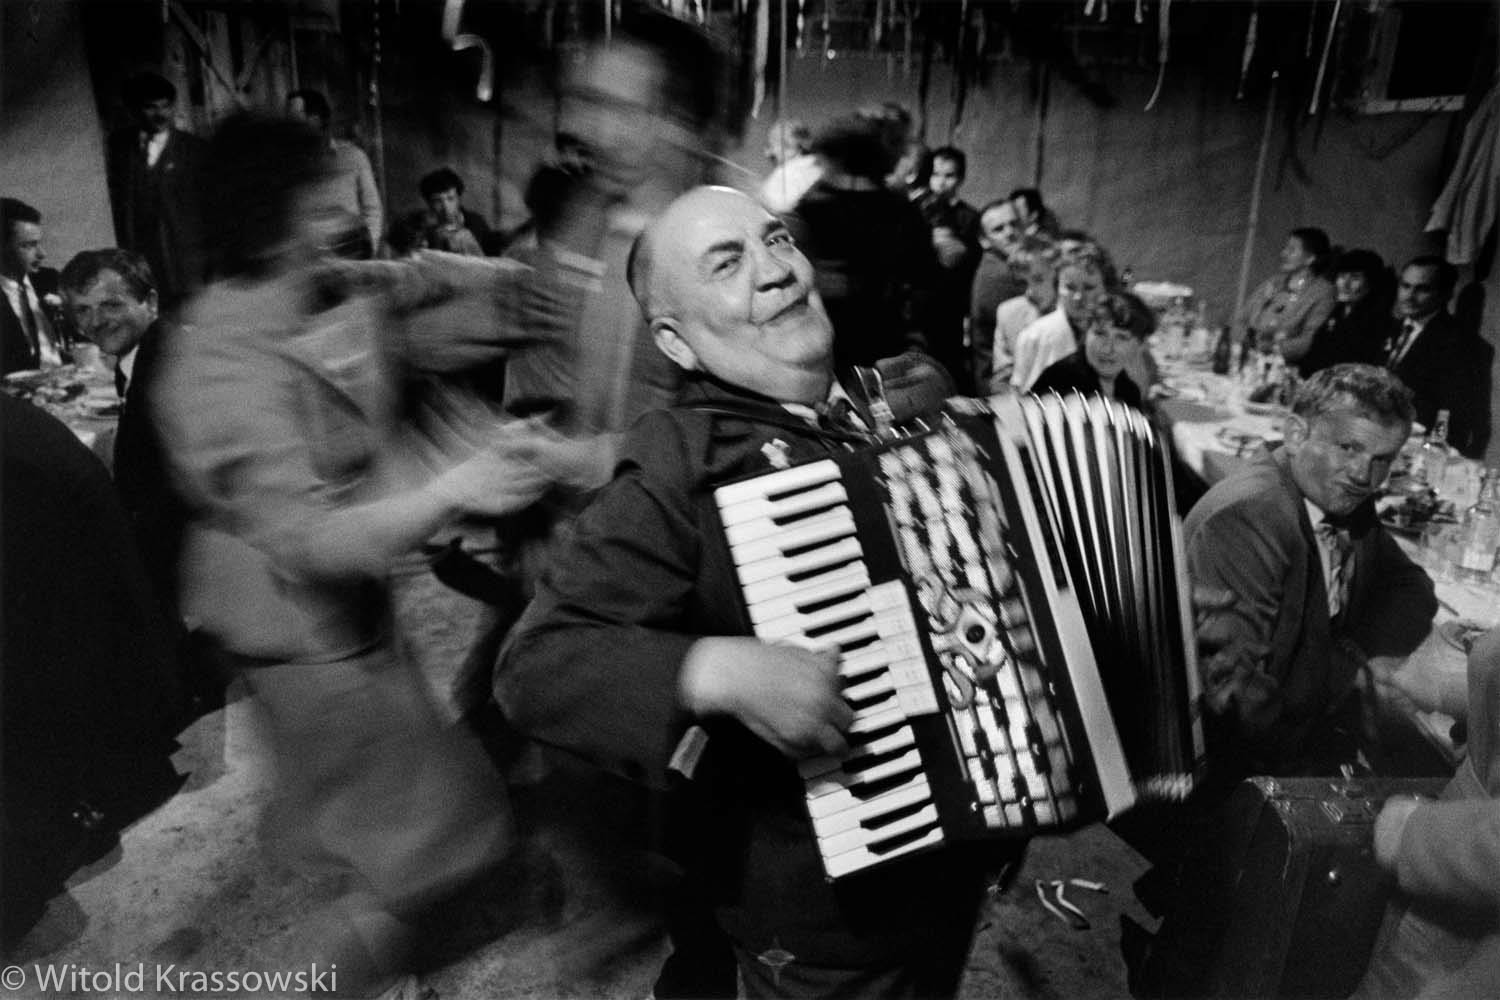 An accordion player during a wedding party in a small village near Tomaszow Lubelski, S-E Poland, 1989